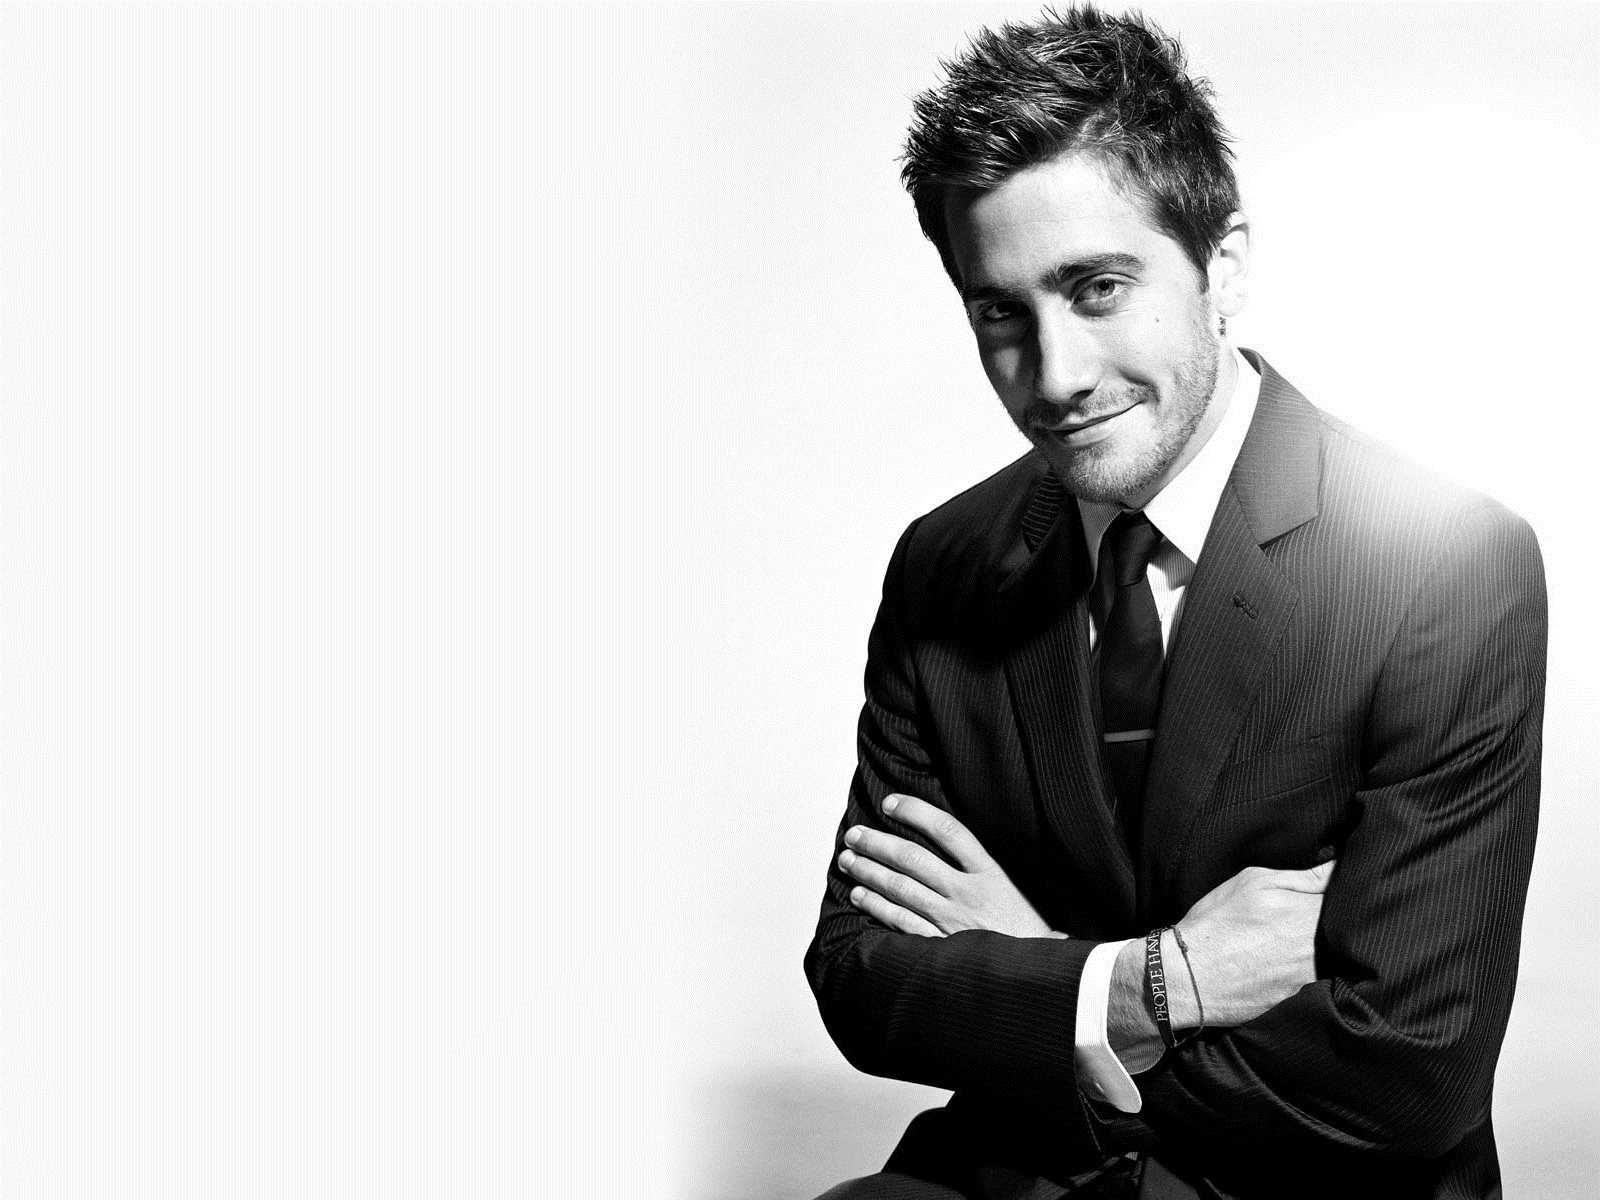 Jake gyllenh HD Wallpaper Background Images 1600x1200